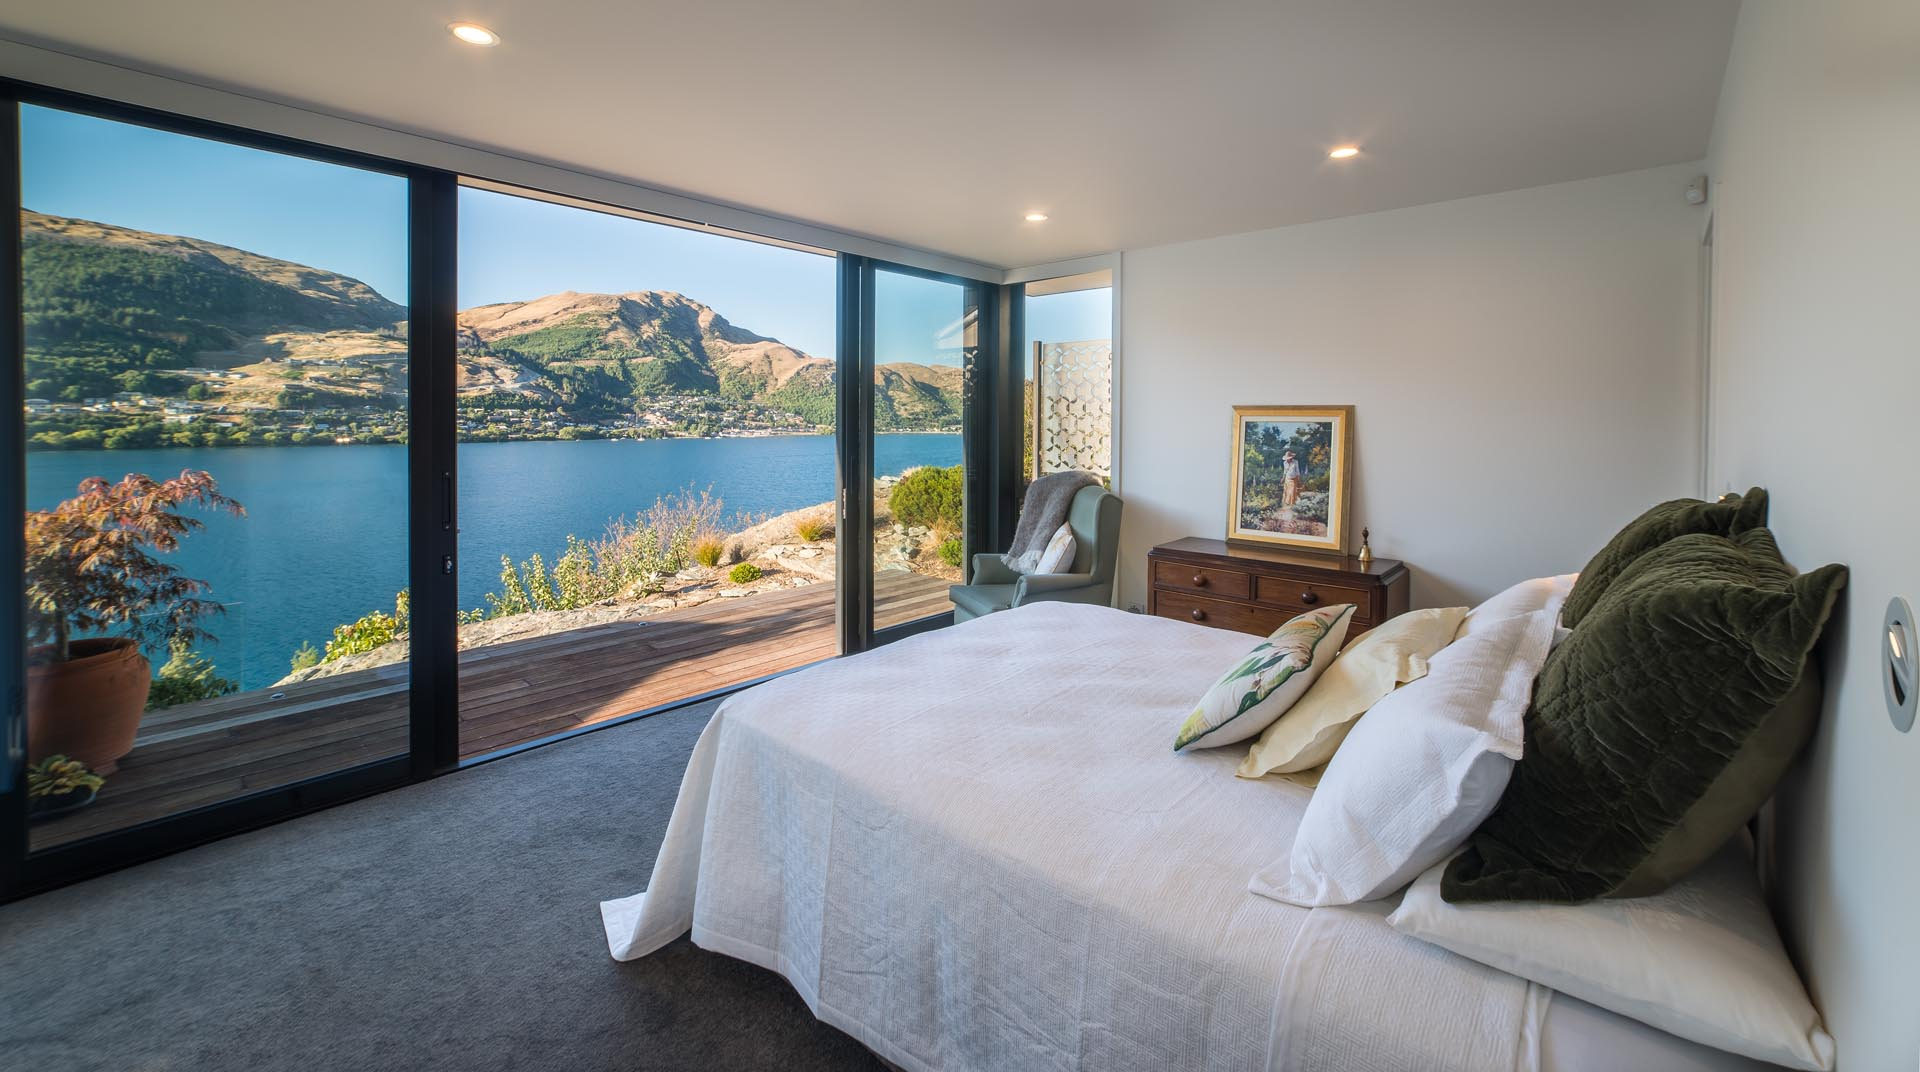 A modern bedroom with floor to ceiling windows and sliding glass doors, that provide an unobstructed view of the lake, which almost looks like a painting.